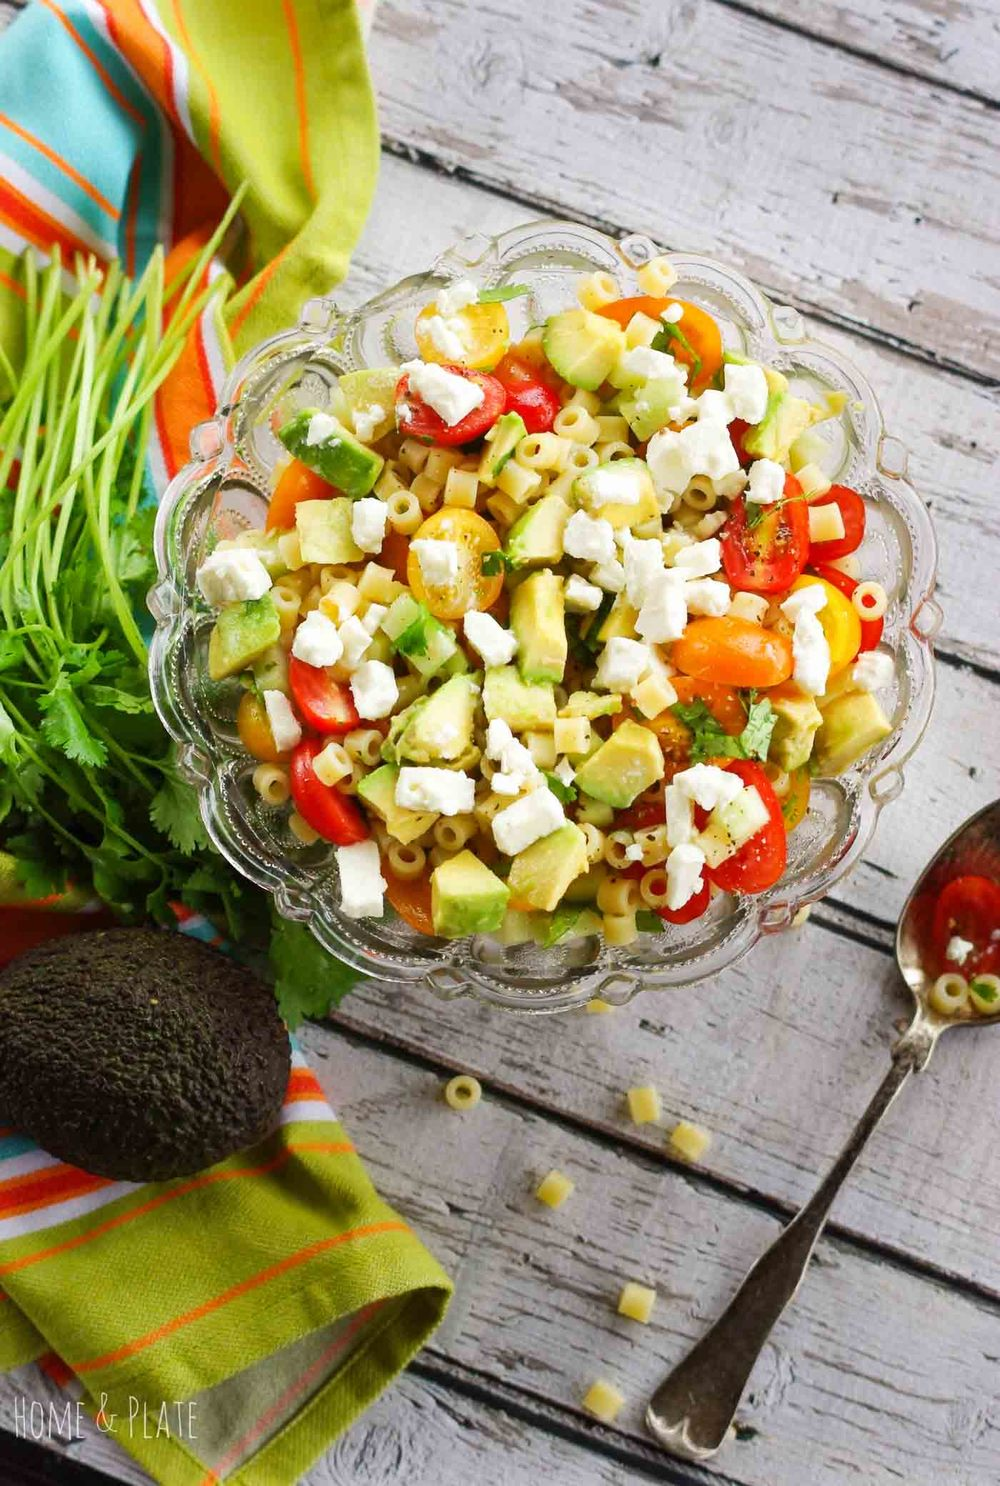 Greek Avocado Pasta Salad | www.homeandplate.com | Keep it cool this summer with this Greek avocado pasta salad featuring summer's best vegetables.